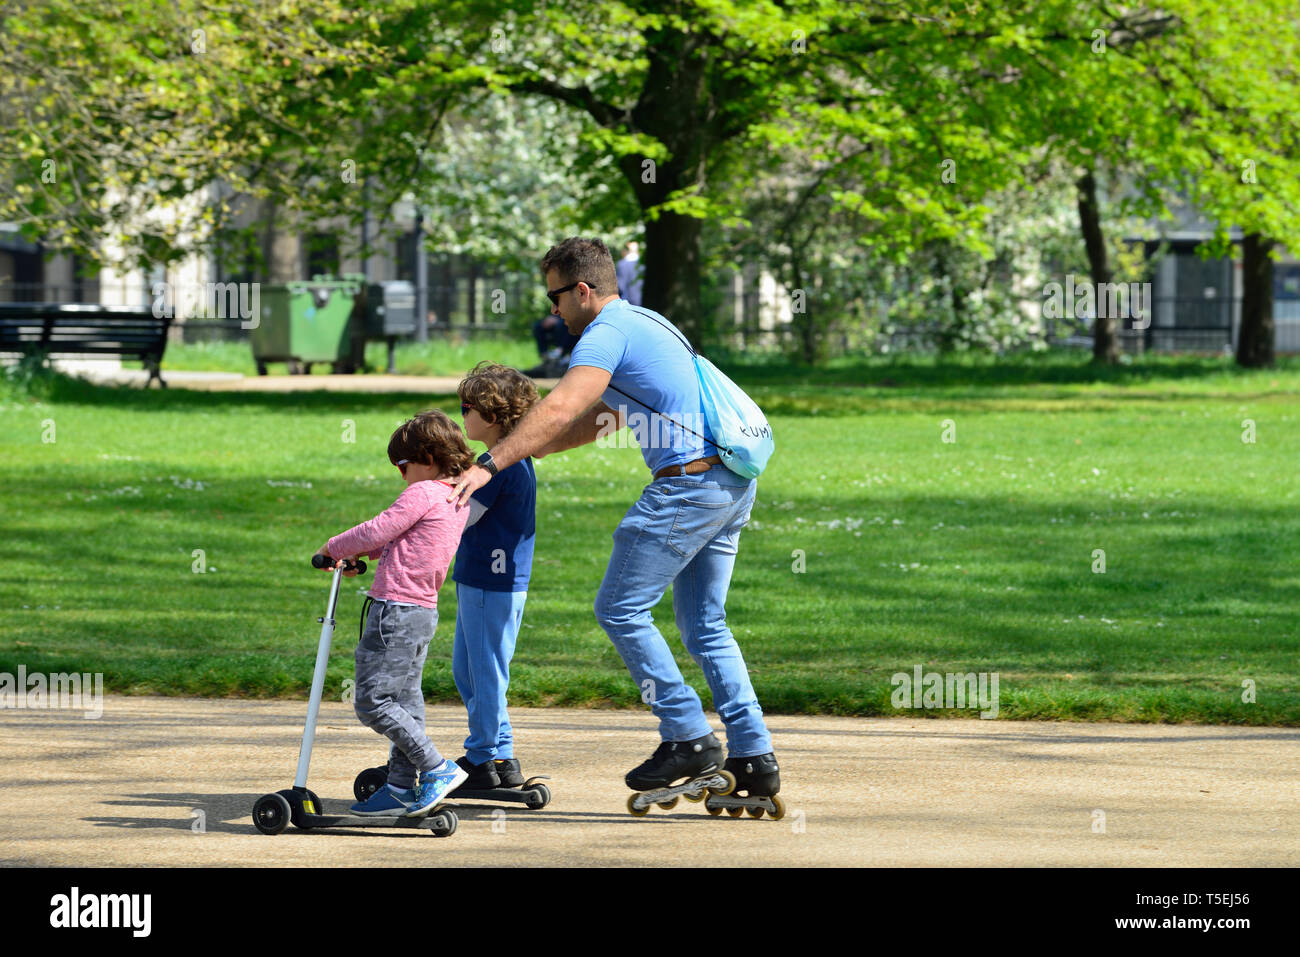 Father and sons on skates and scooters, Hyde Park, London, United Kingdom - Stock Image